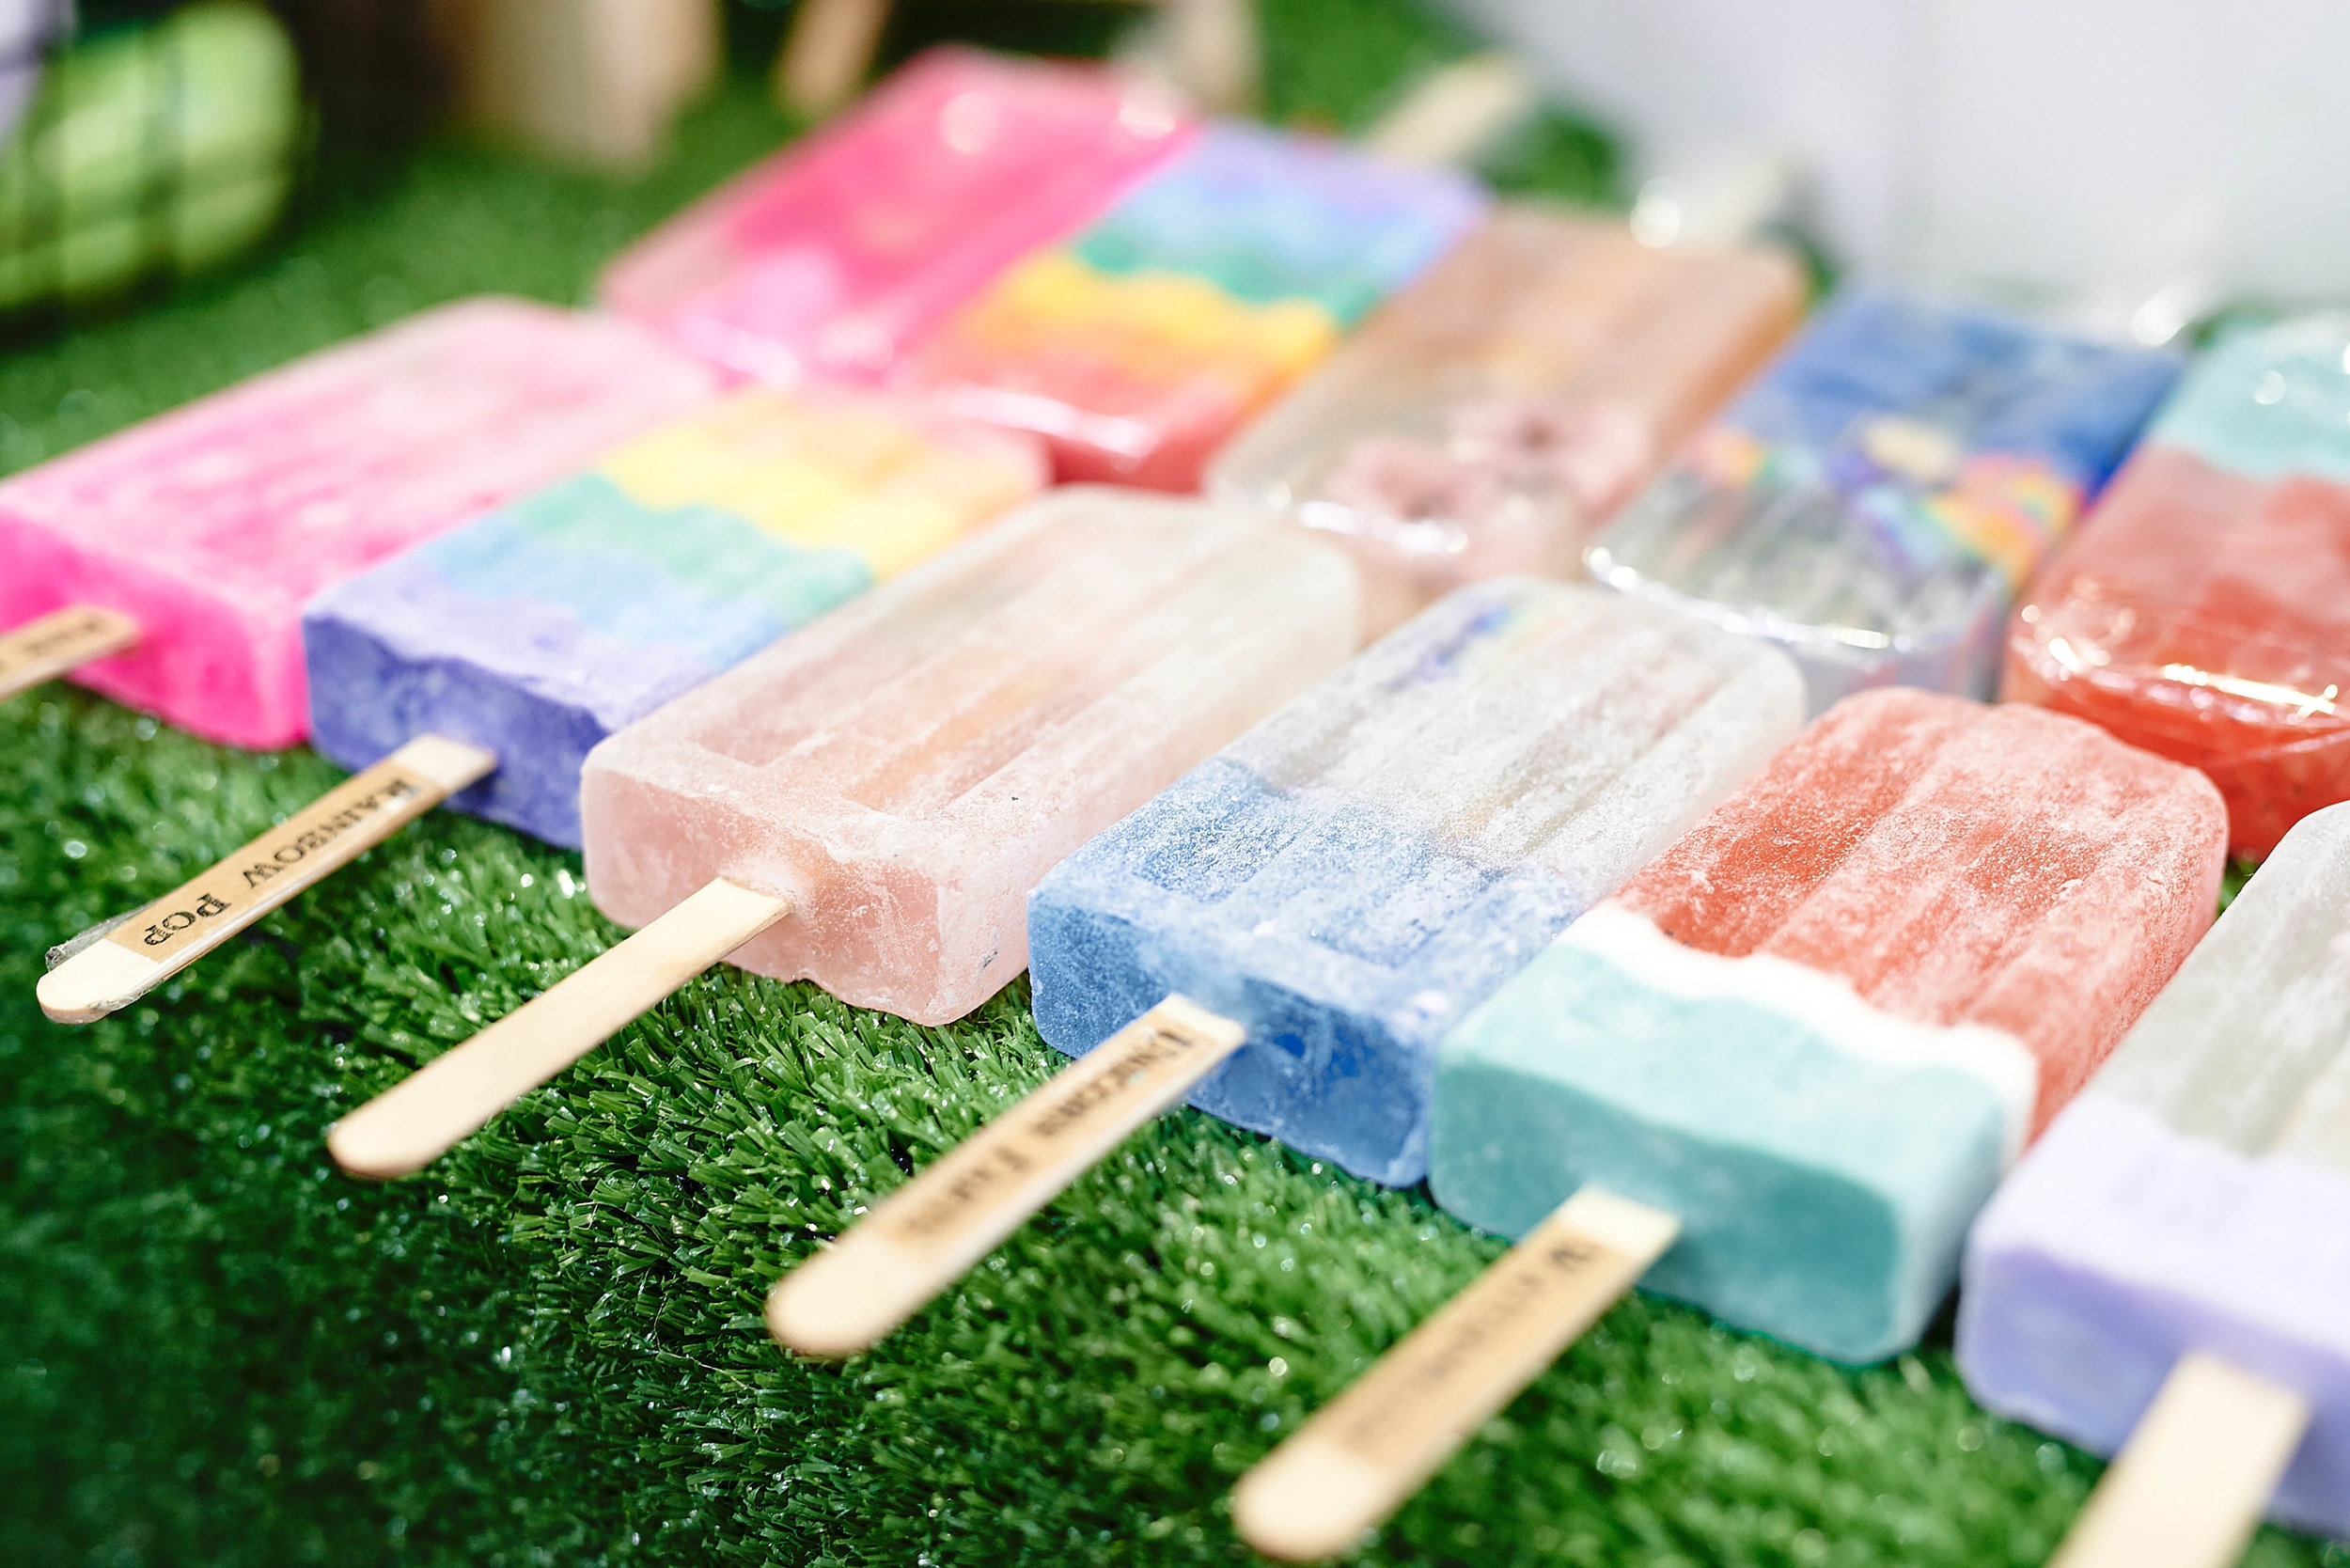 Rainbow Pops are great for summer!